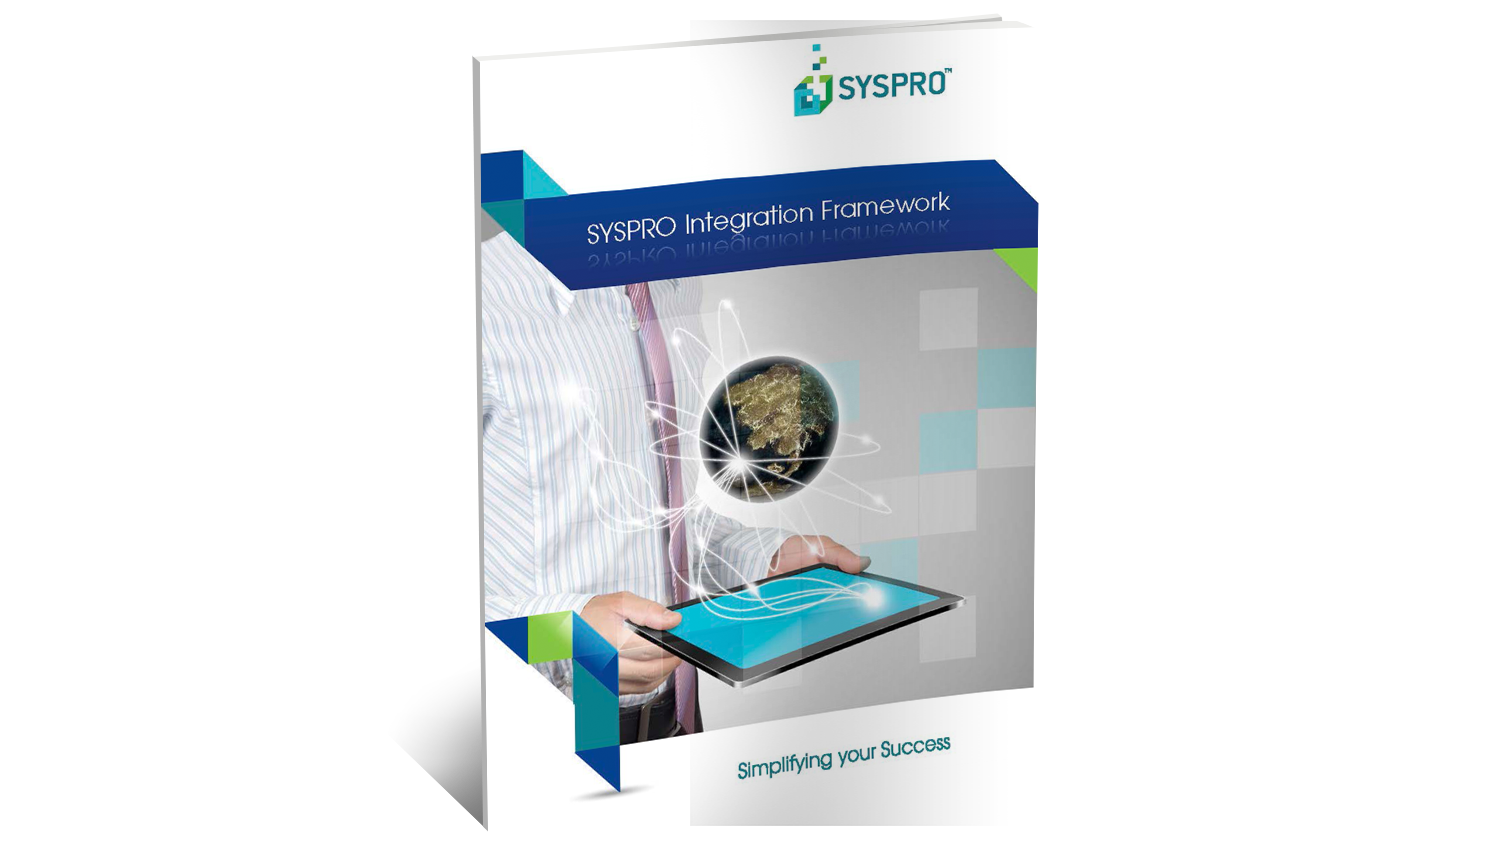 SYSPRO Integration Framework Brochure